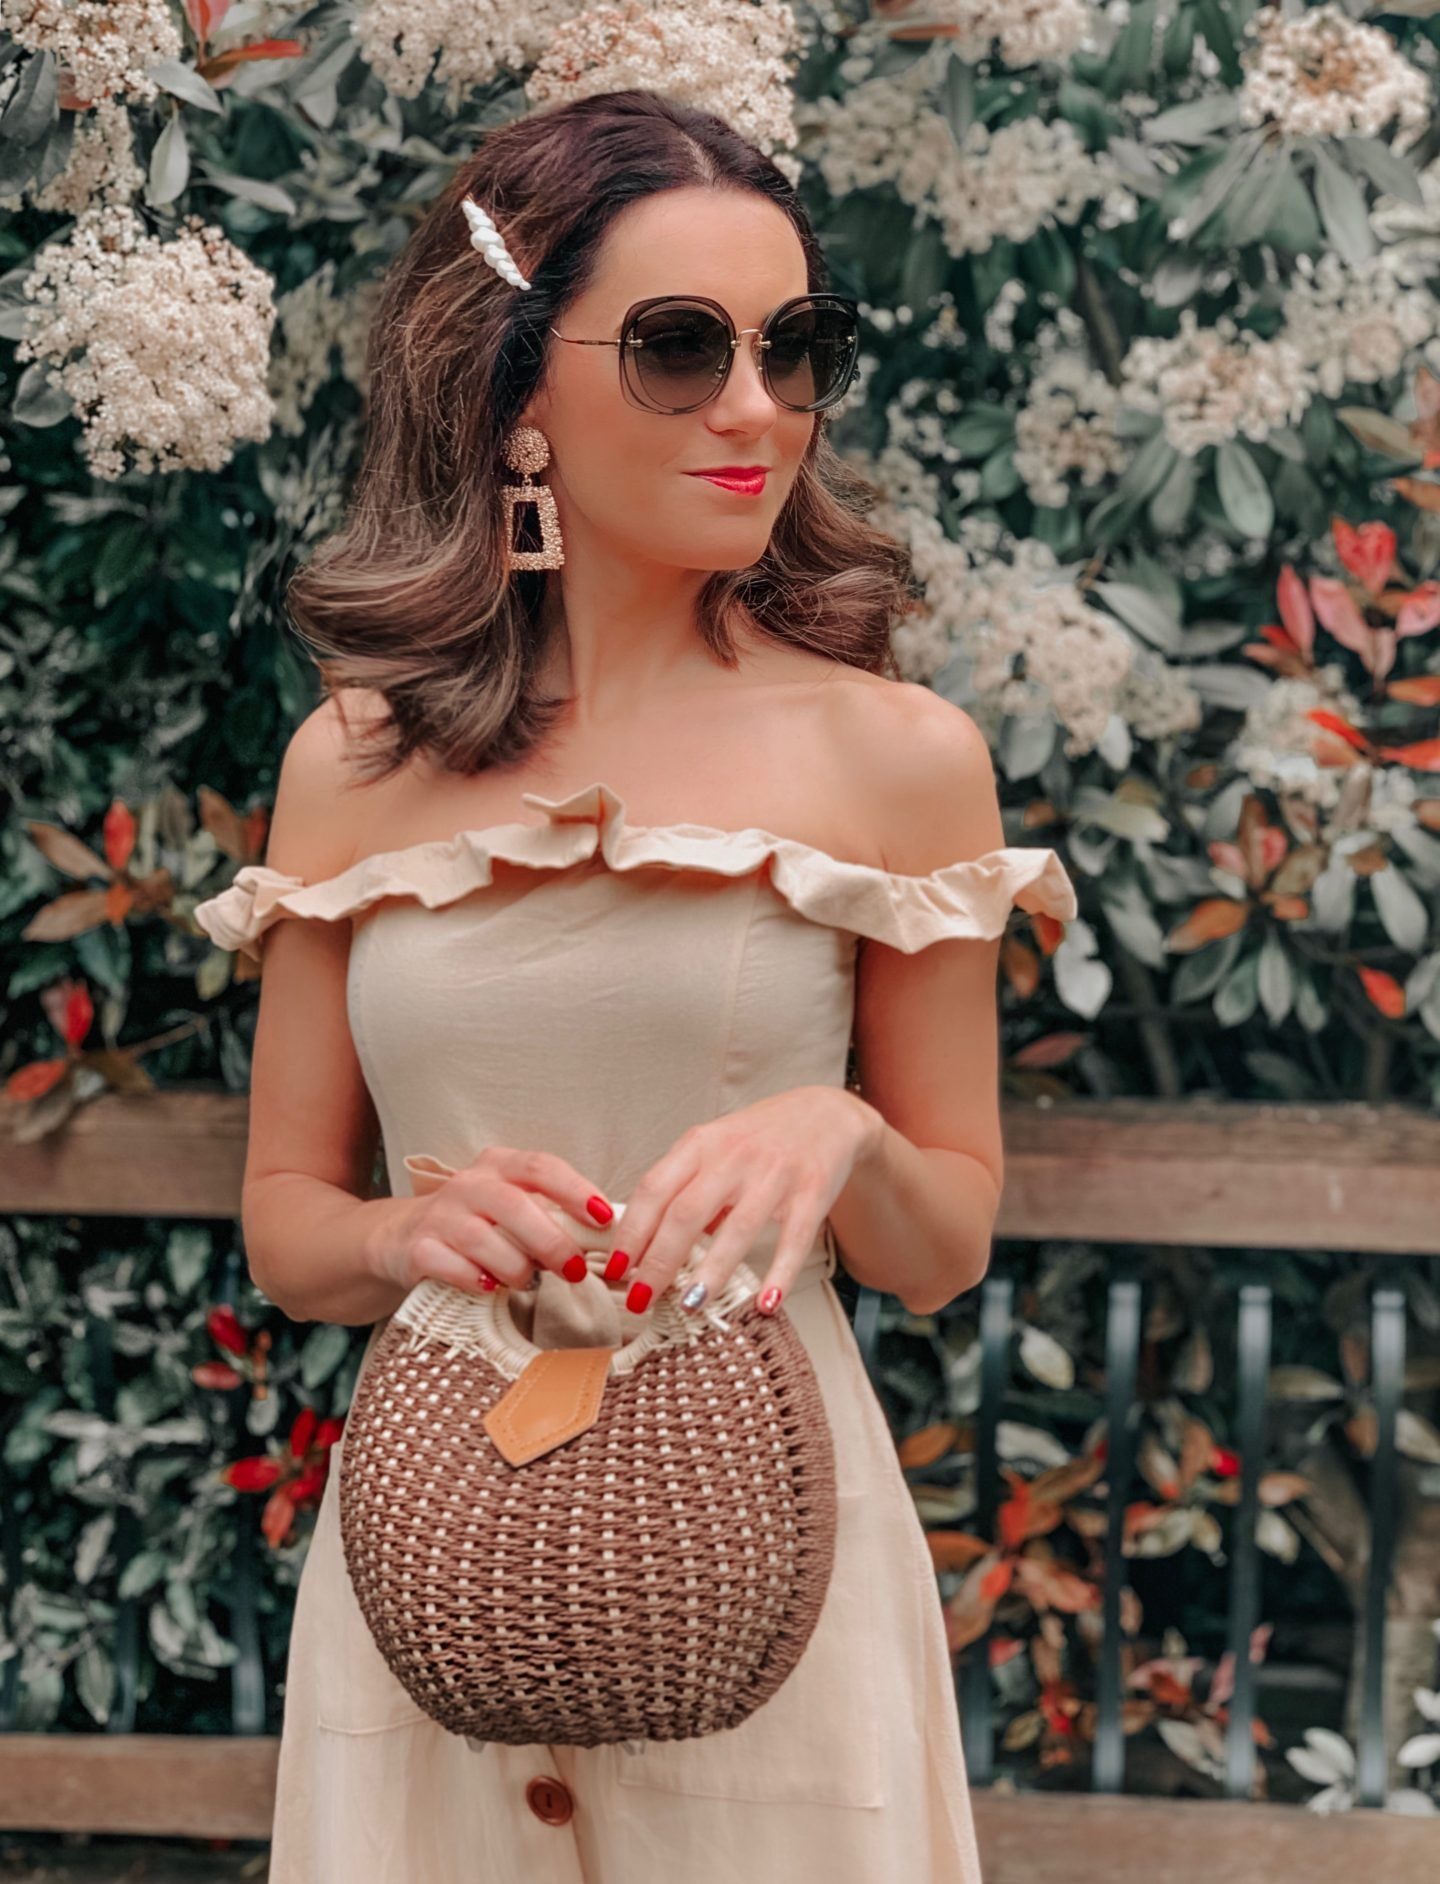 OUTFIT FROM ELEGANT DUCHESS BOUTIQUE Round Summer Beach Straw Bag | Off shoulder ruffle detail midi dress | TEXTURED GEOMETRIC EARRINGS | Pearl Hair Clip | MIU MIU SUNGLASSES | NEXT Plait Detail Espadrille Wedges